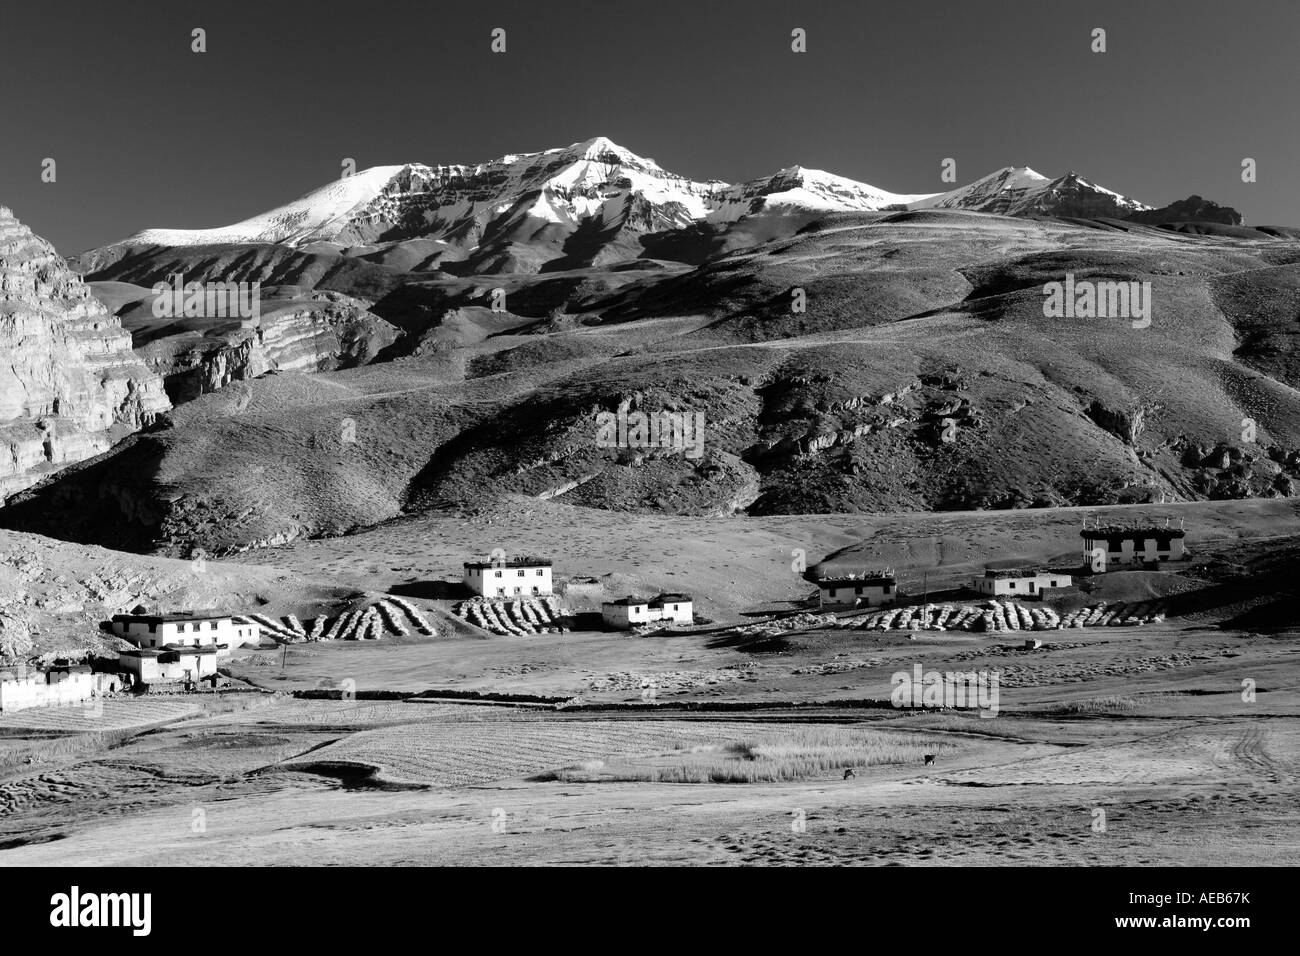 View of village Langza and snow-clad mountains at the backdrop in Spiti Valley, Kaza Himachal Pradesh India Stock Photo